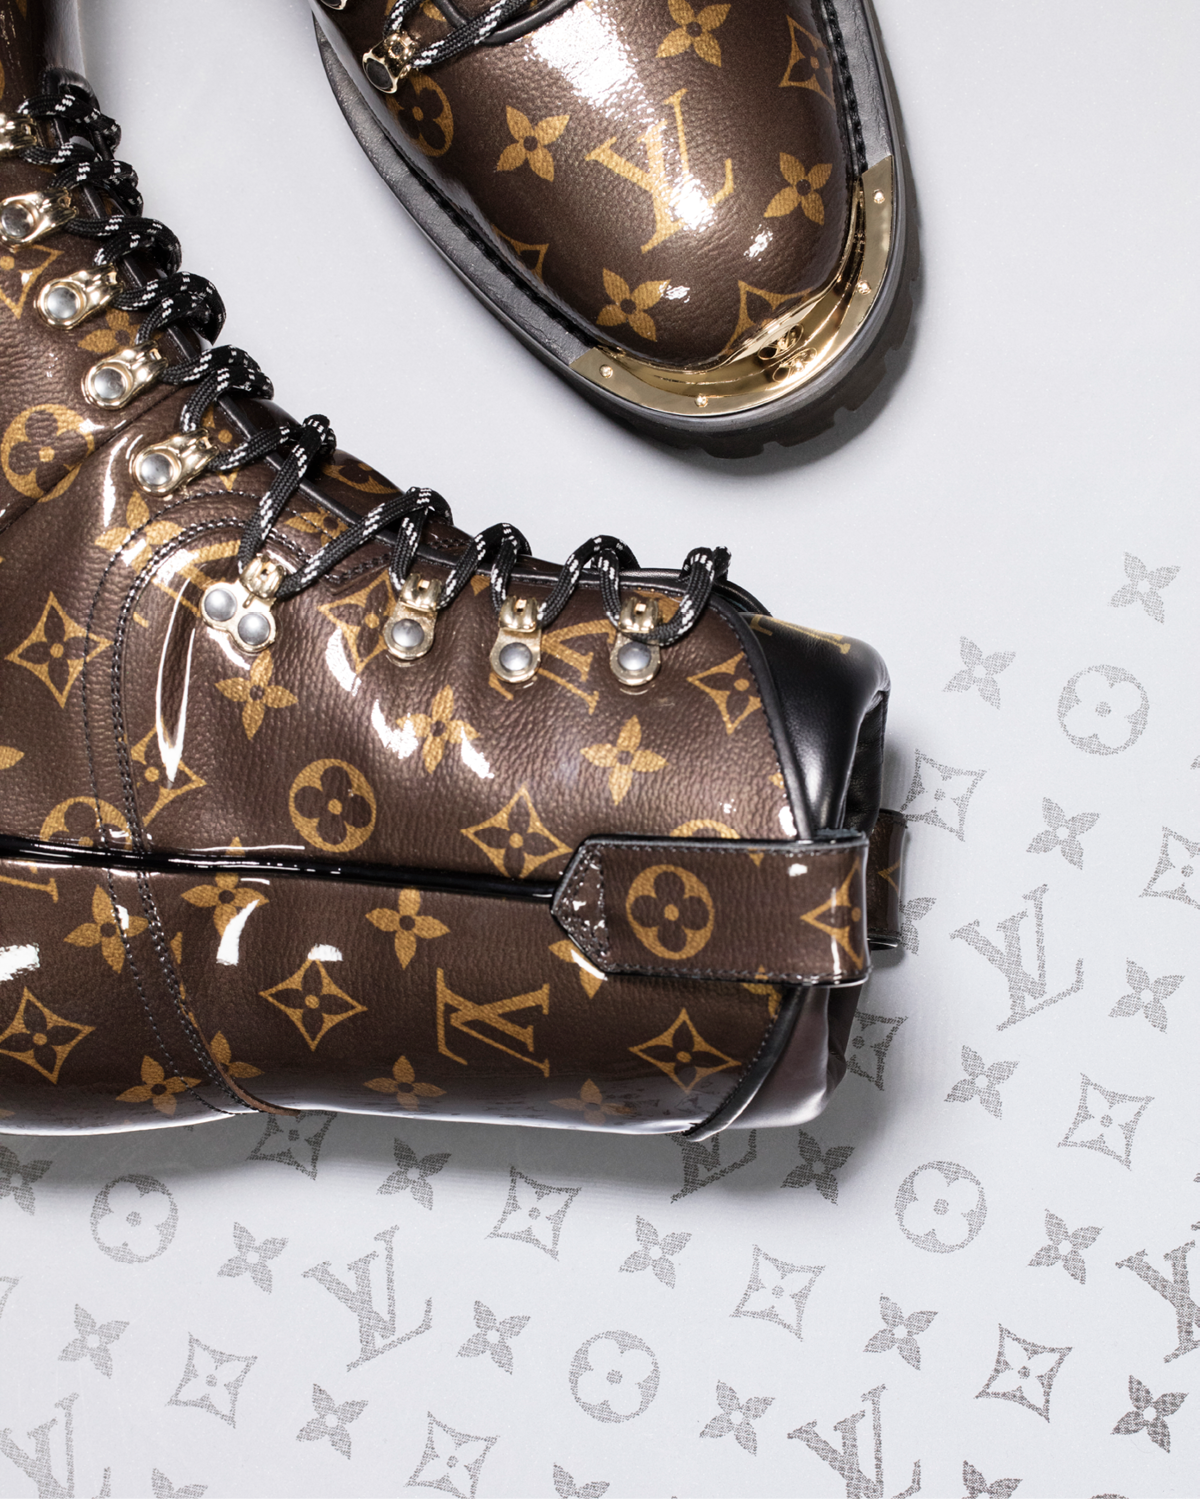 c90994e3ea0 Monogram Glaze. A detail from the final Louis Vuitton Men s Fall Winter  2018 Show by Kim Jones.